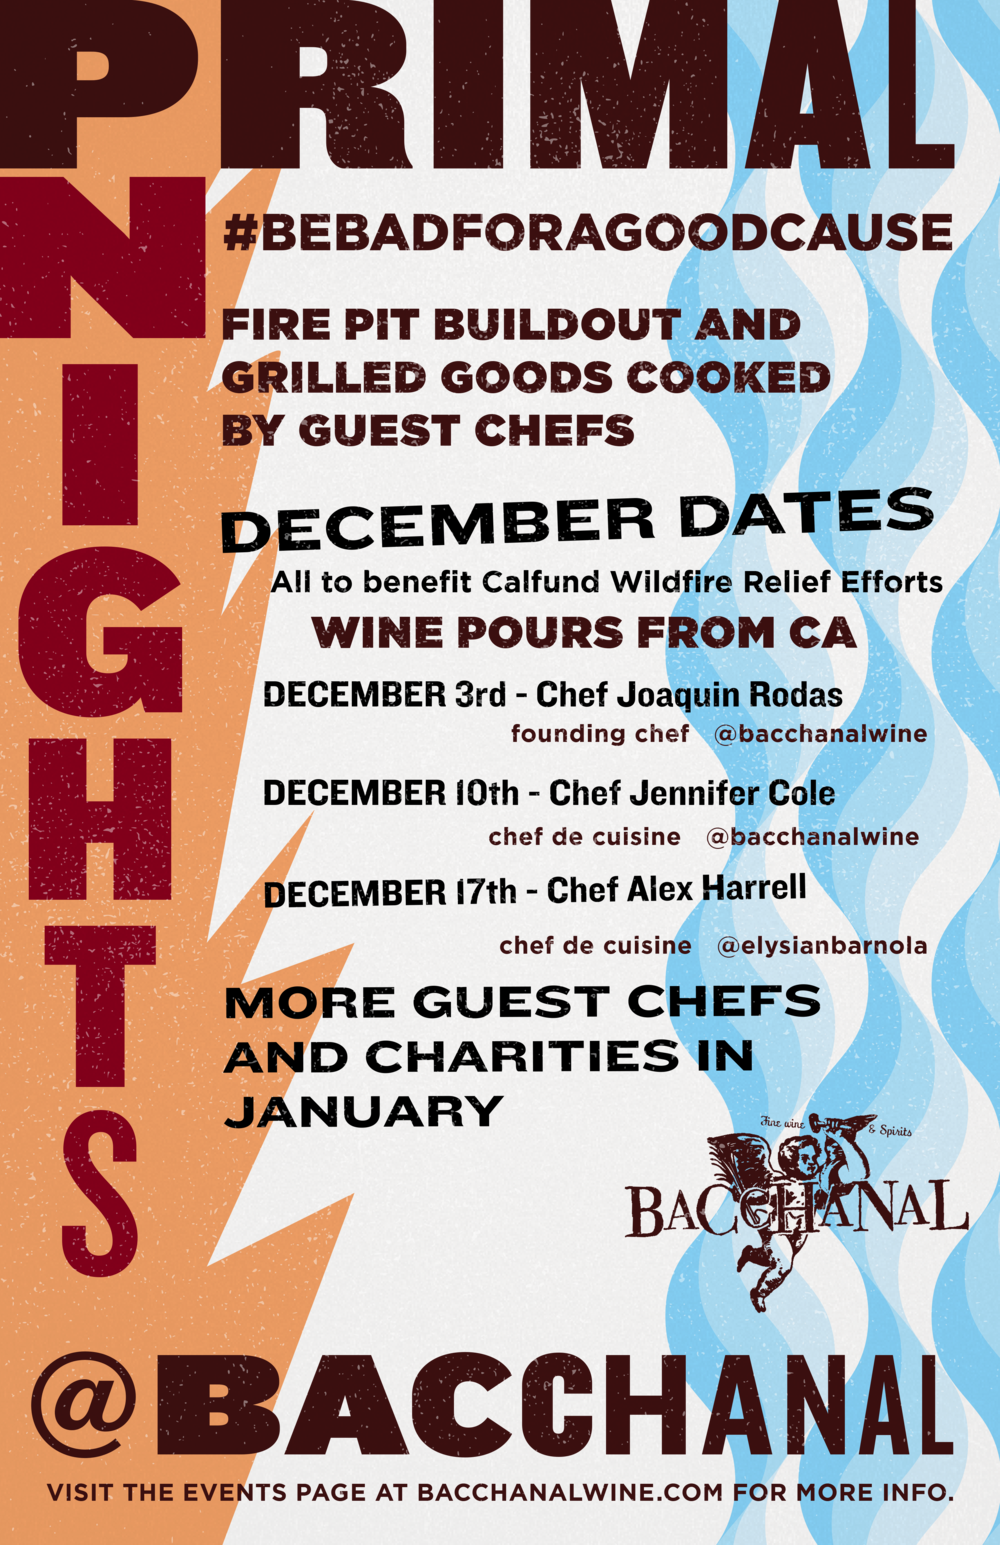 BACH_PN2018poster_Winter2018and2019.png